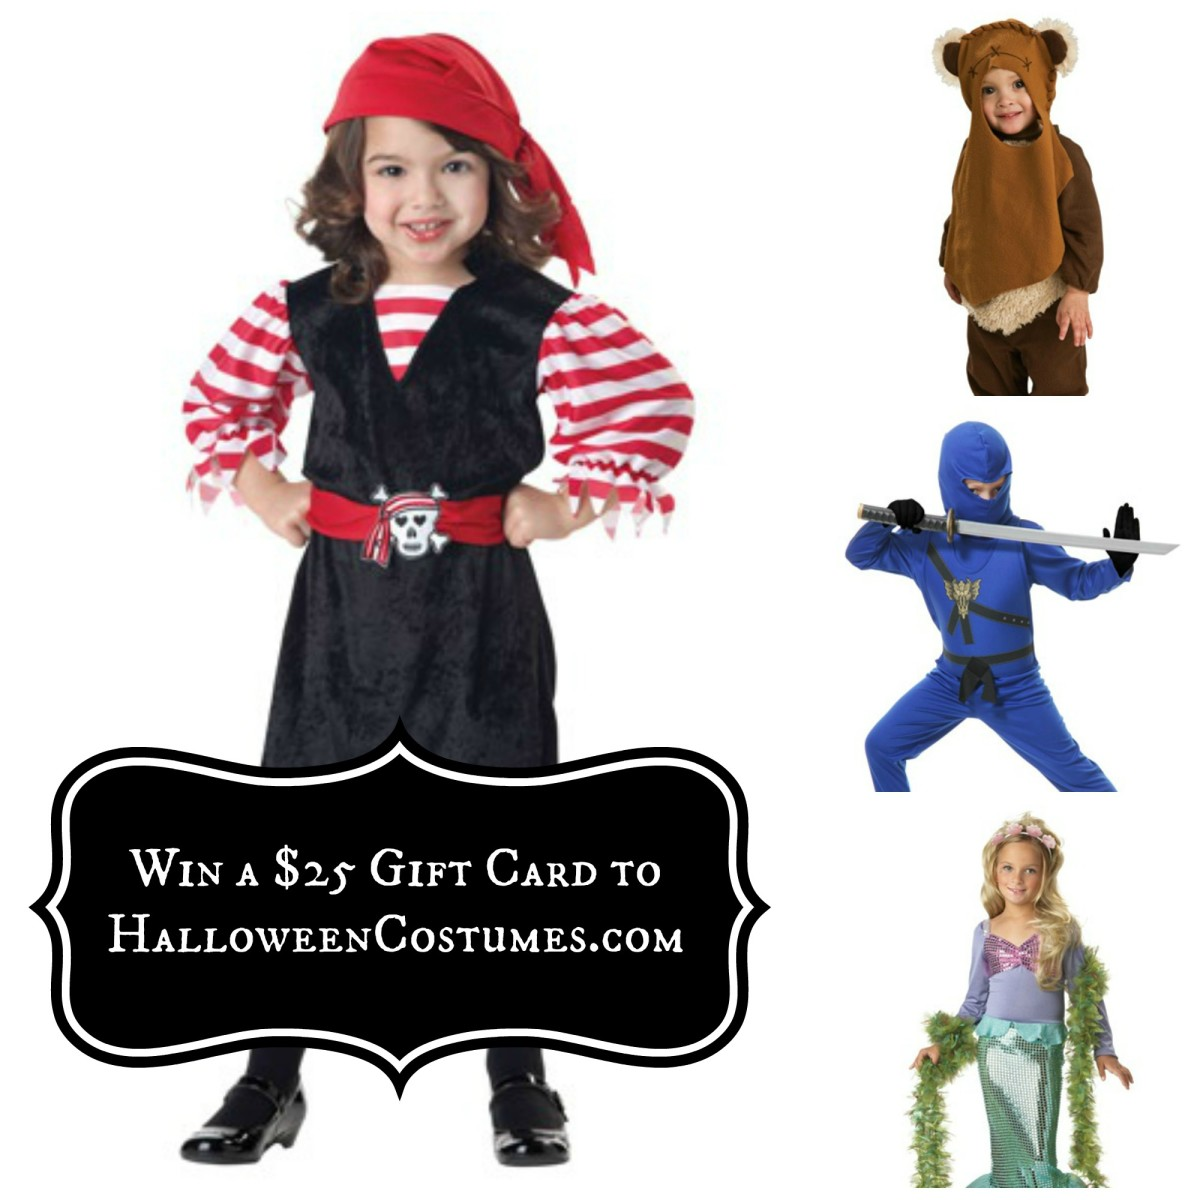 Halloween Costumes Giveaway